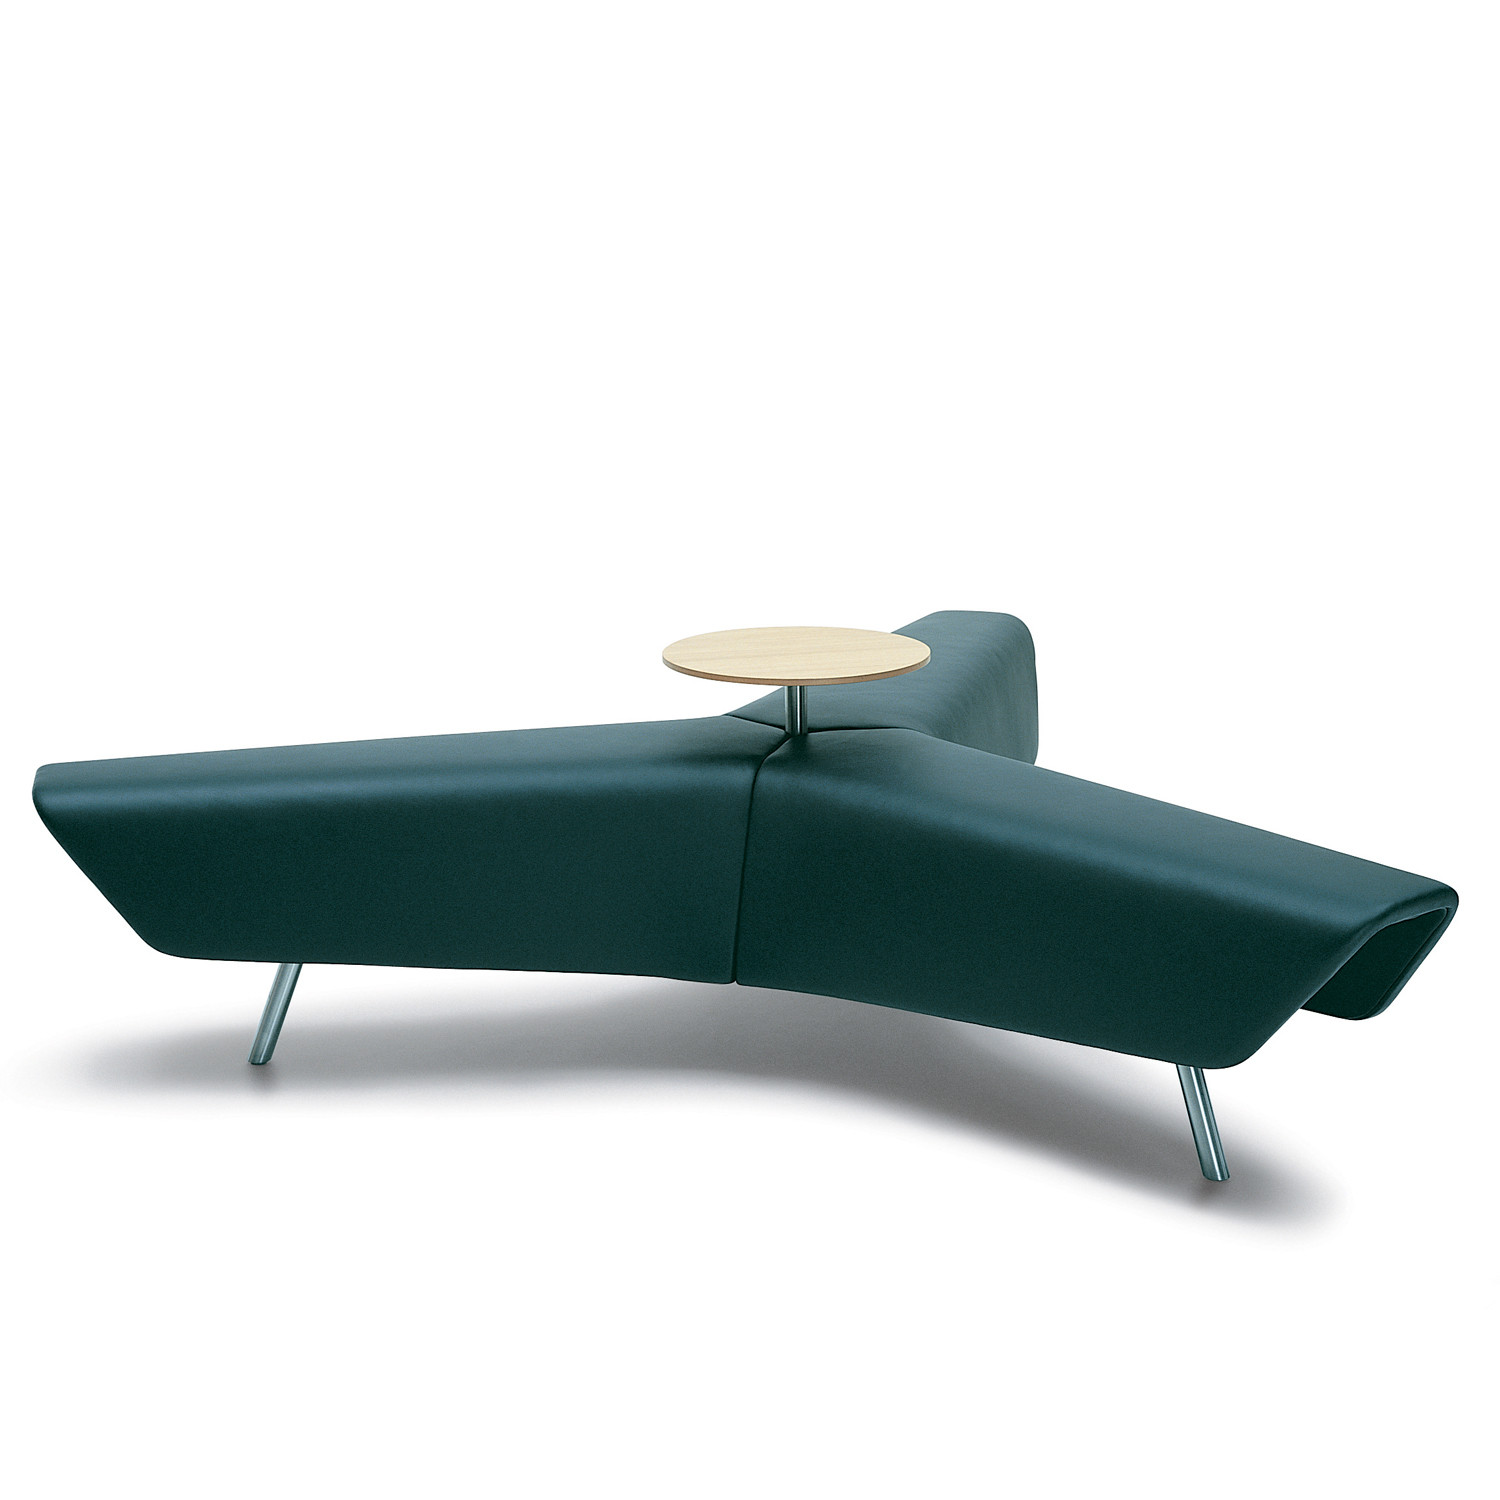 Hm83 Reception Bench with Table